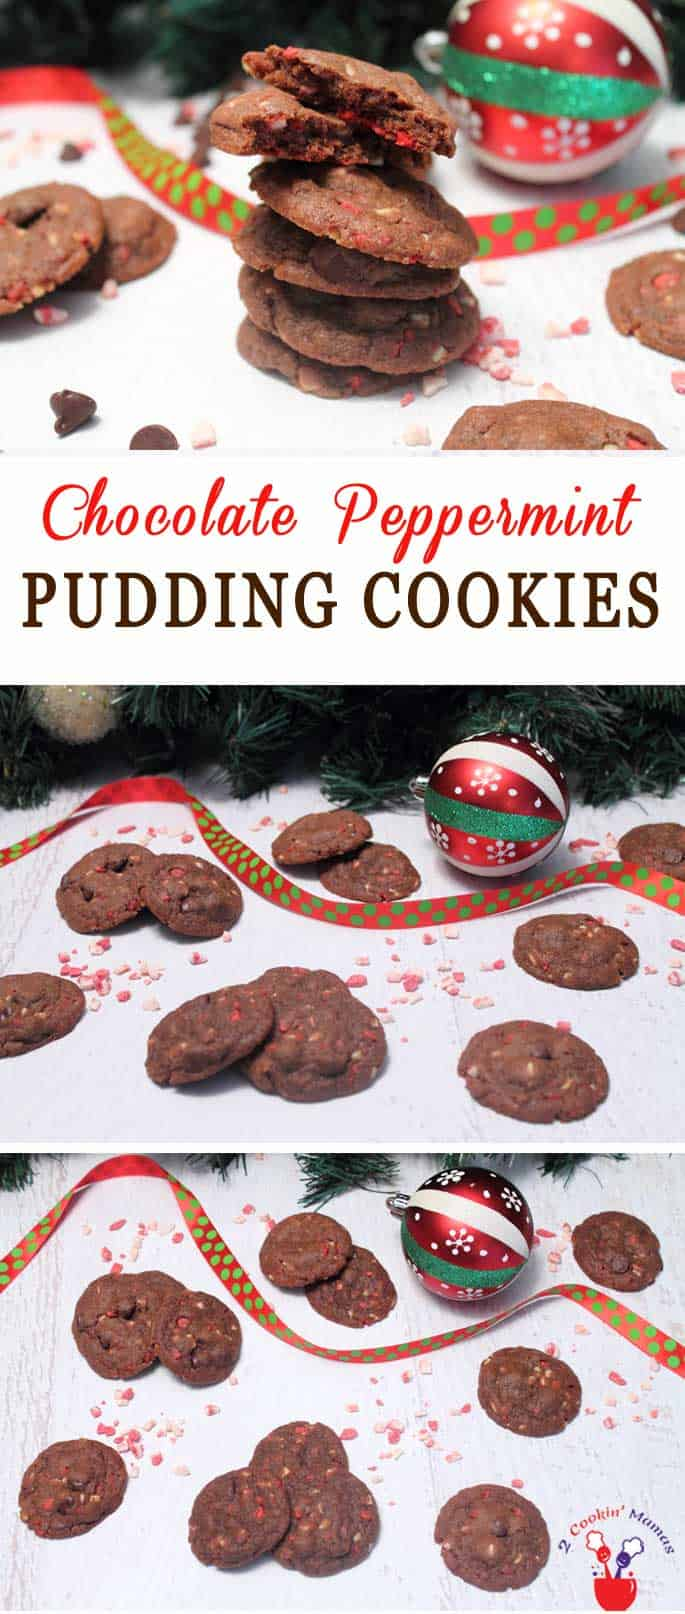 Our Chocolate Peppermint Pudding Cookies recipe makes delicious soft buttery cookies filled with chocolaty goodness & just the right amount of peppermint chips for a little crunch. #cookies #christmascookies #chocolatecookies #peppermint